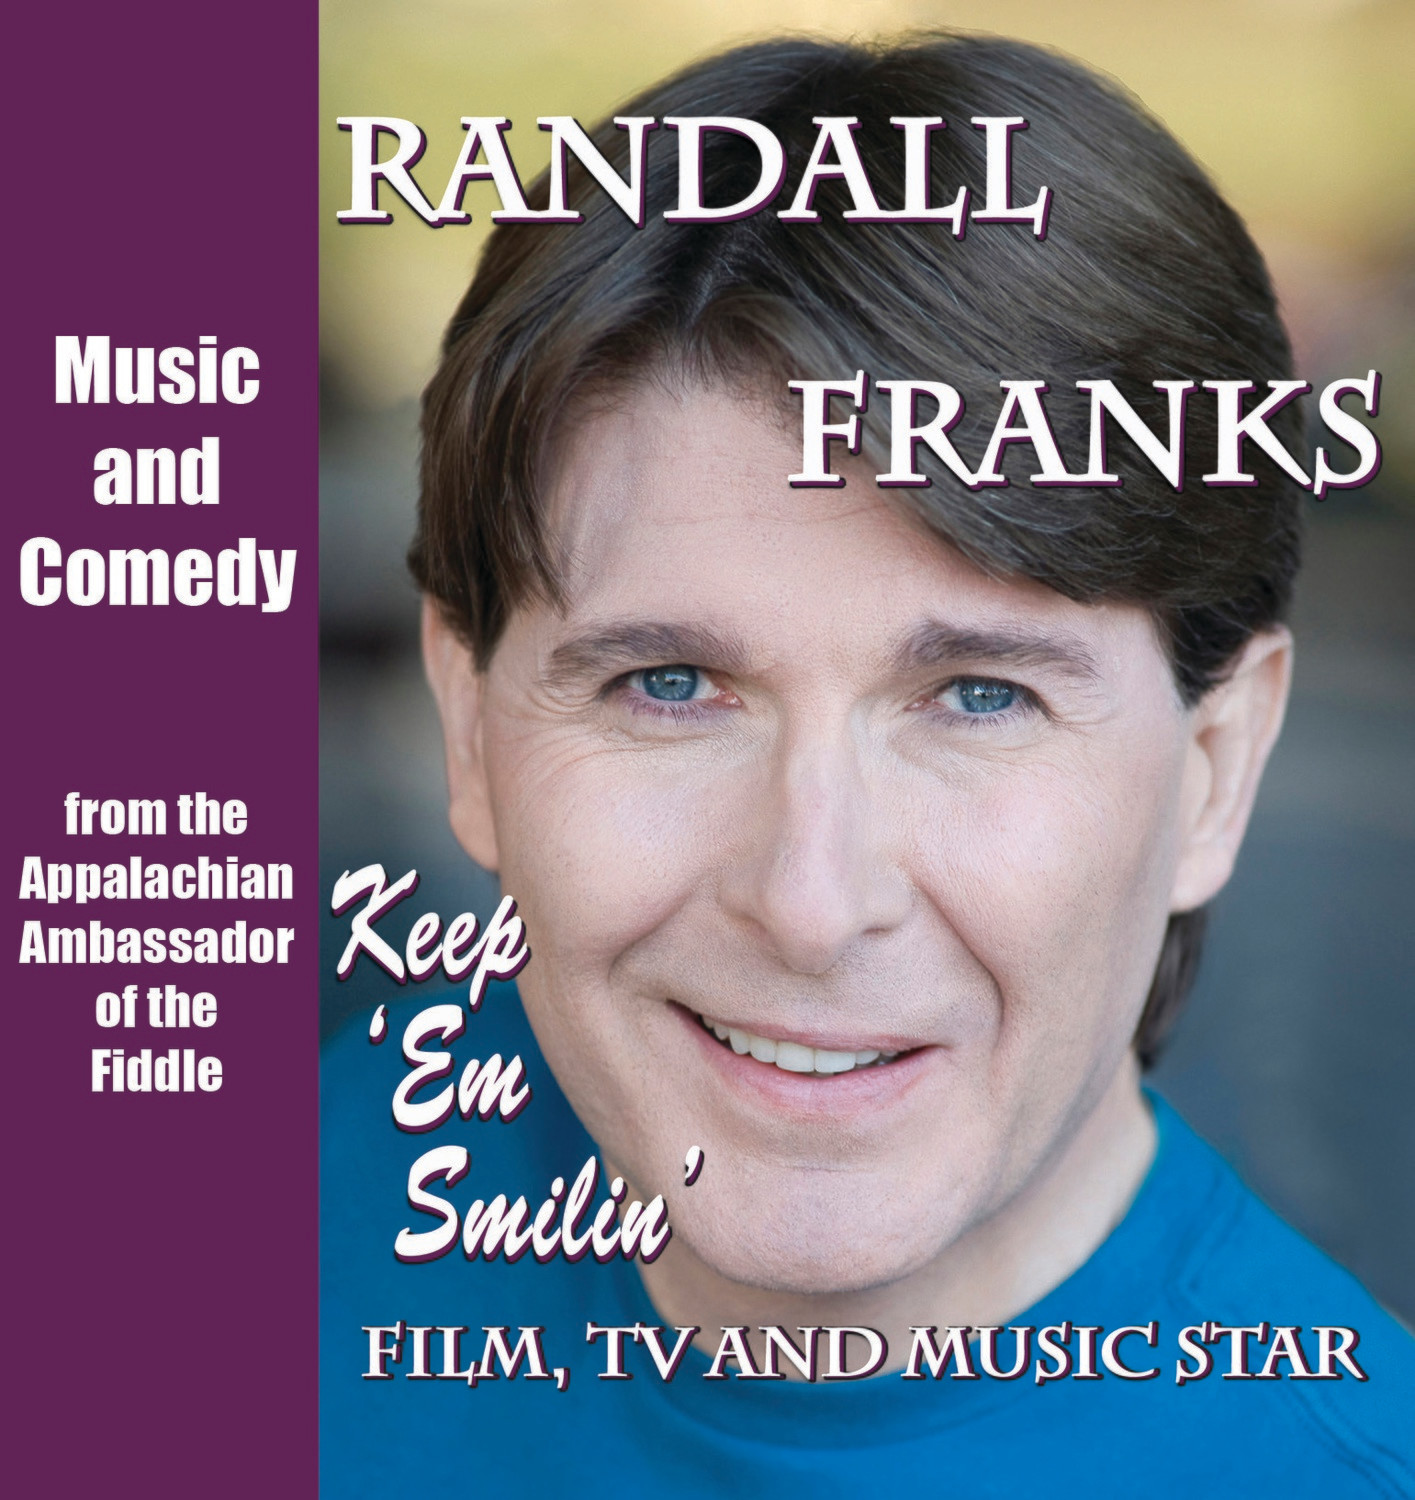 Randall Franks - Keep 'Em Smilin' - Christian Music and Comedy